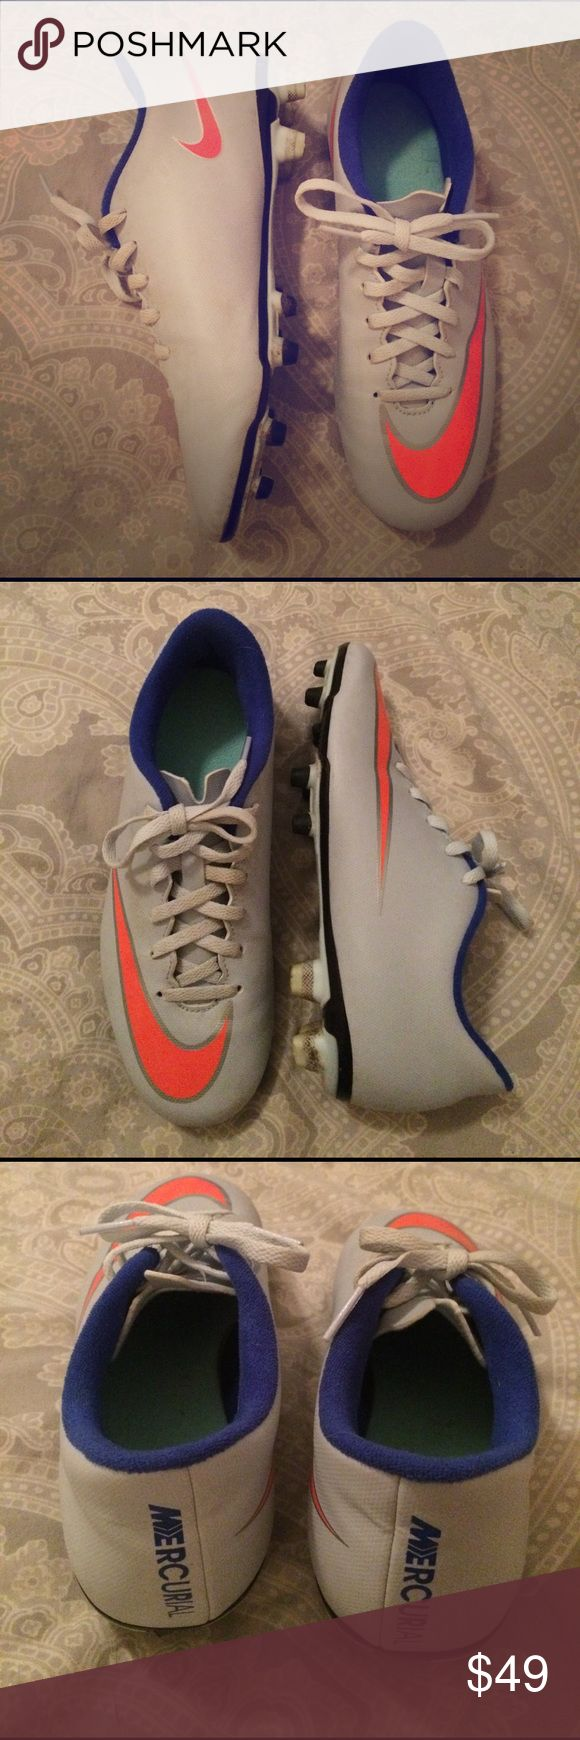 Nike Mercurial Soccer Cleats - size 7 NIKE MERCURIAL VICTORY V FG WM - WOMEN'S soccer cleats - size 7 :: length runs 1/2 size smaller (researched after I put them on) bought online - worn for one 6 hour tournament Nike Shoes Athletic Shoes